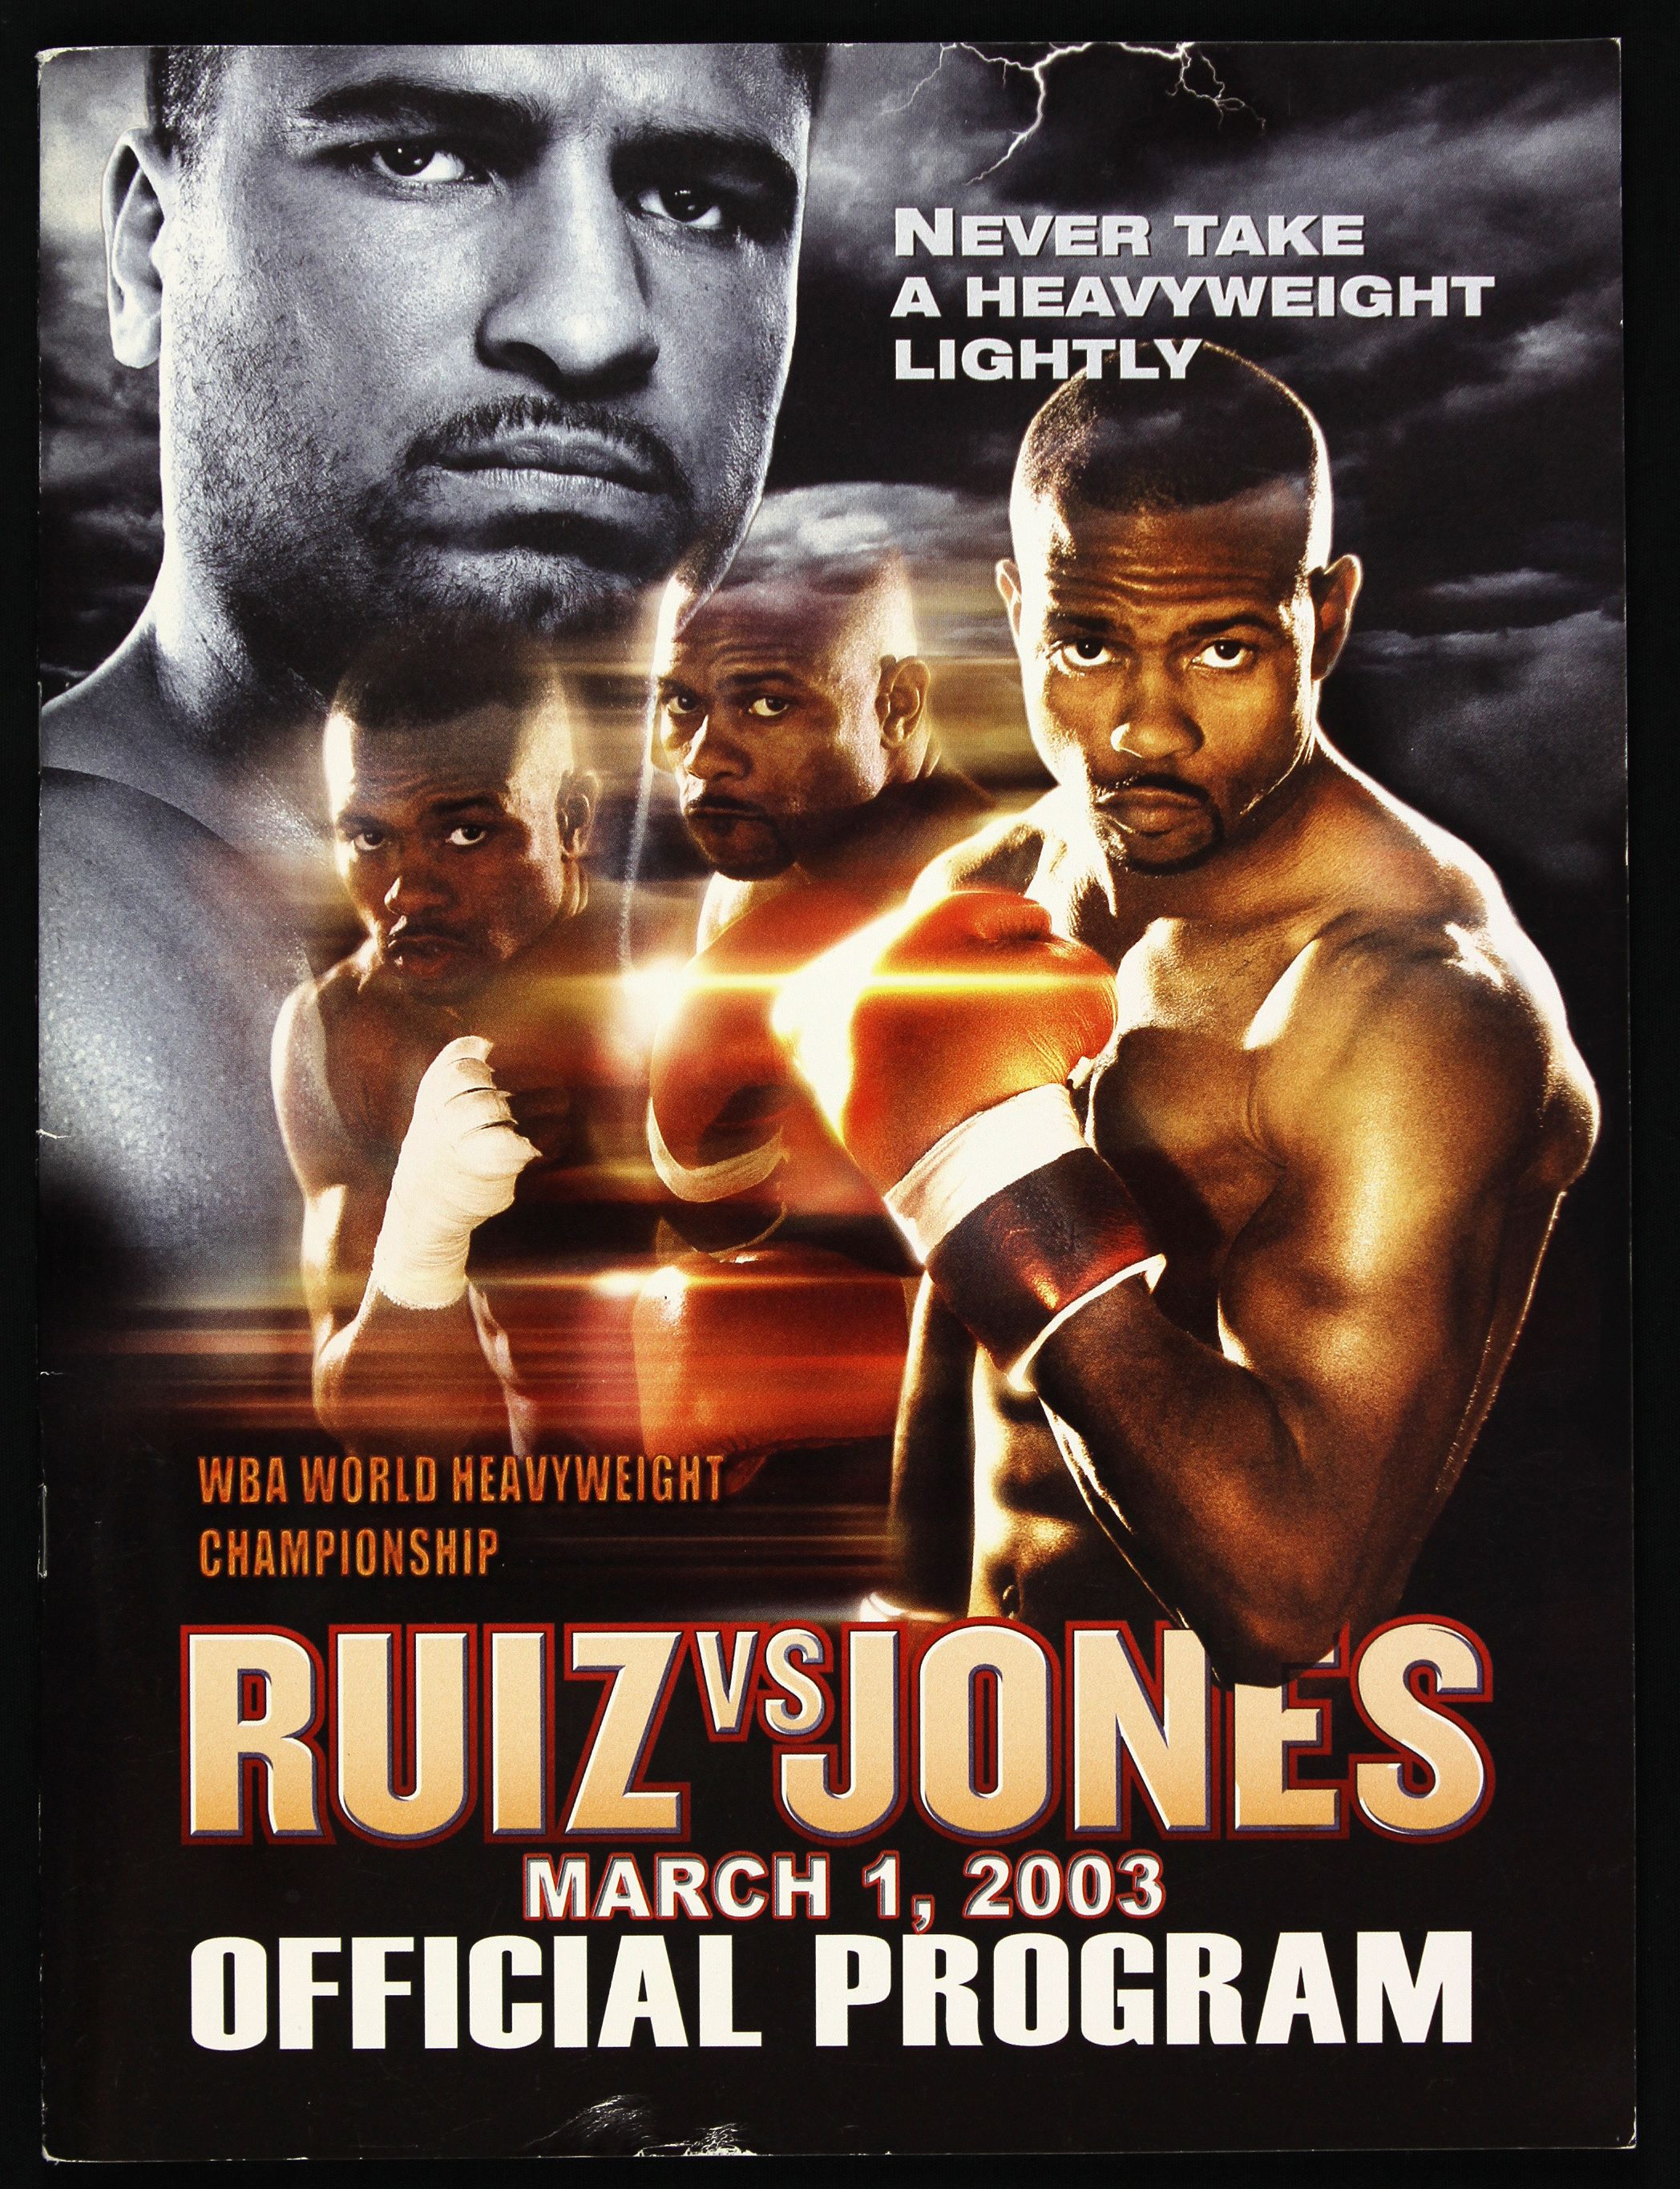 FIGHT PROGRAM JONES-RUIZ.